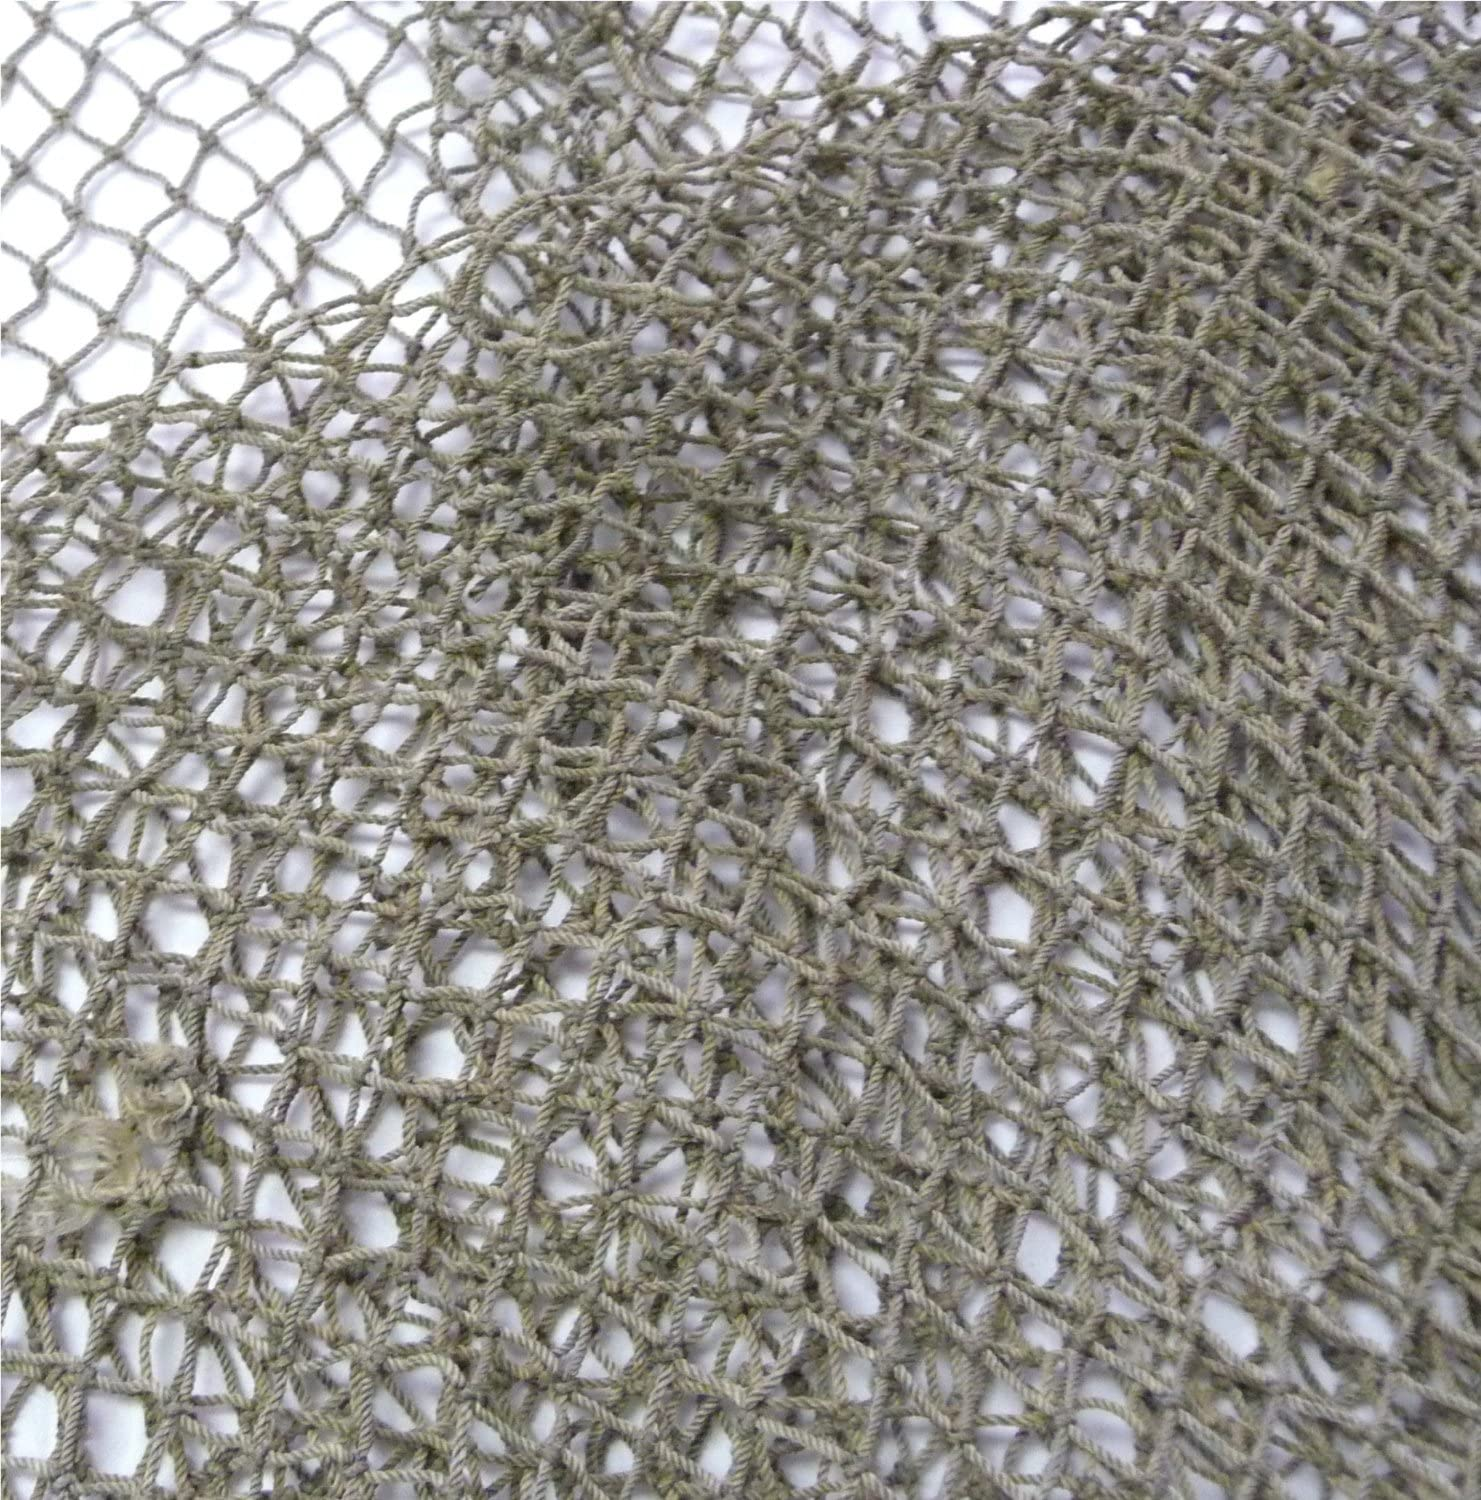 Decorative Fish Net Outdoor Water Sport Hobby Craft Party Supply Home Decor